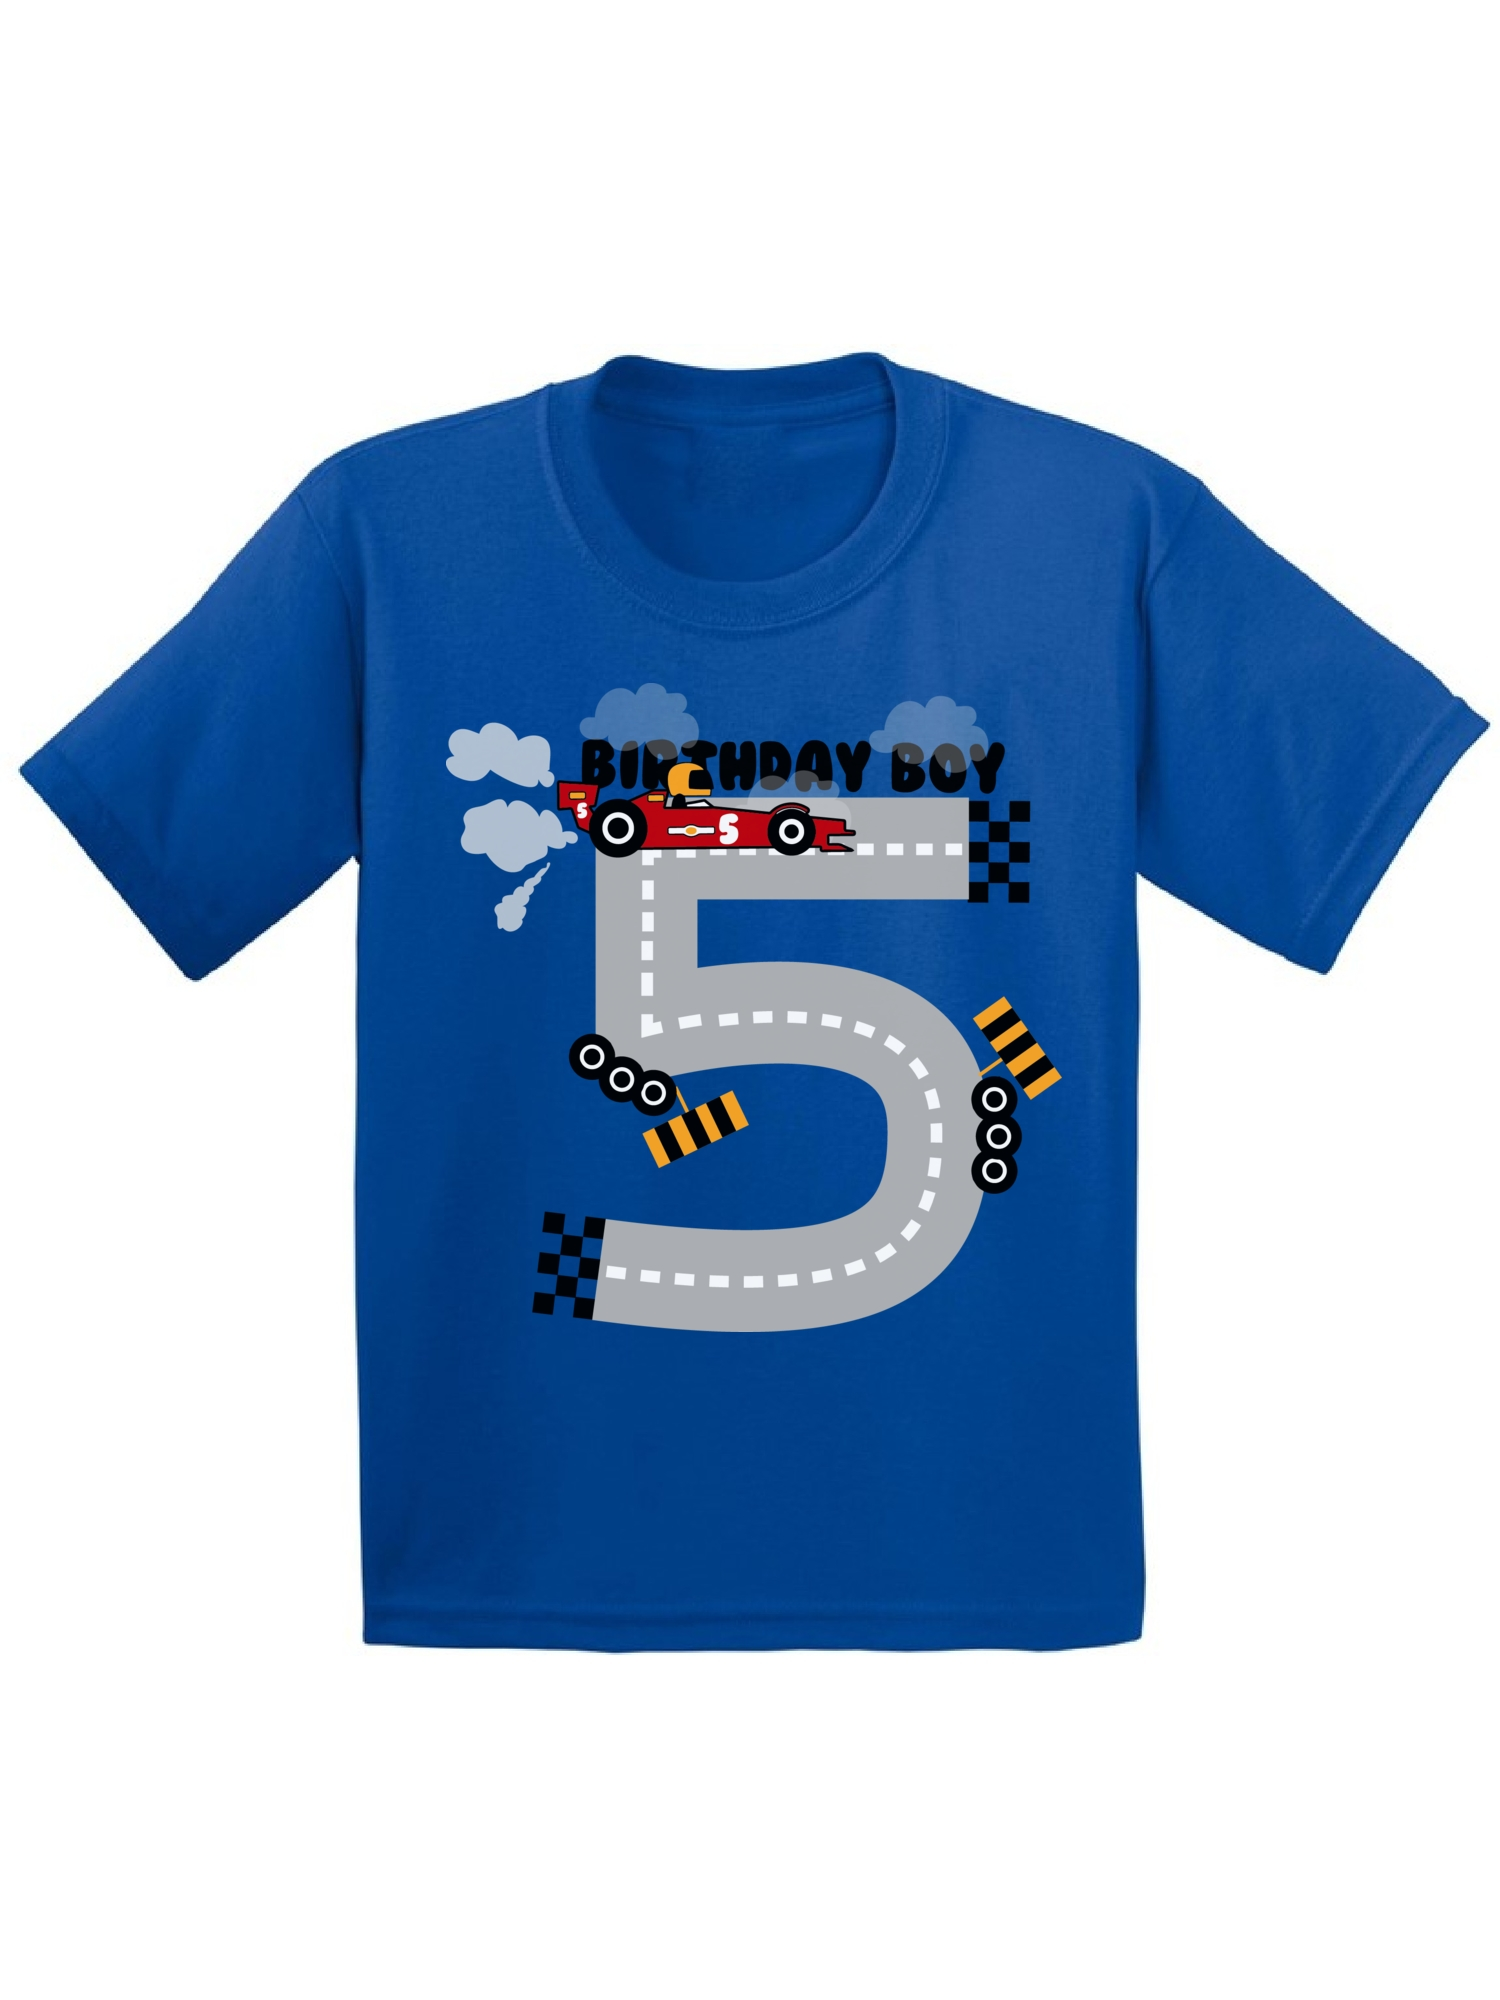 Awkward Styles Birthday Boy Race Car Toddler Shirt Party For Boys Funny Gifts 5 Year Old 5th T Fifth